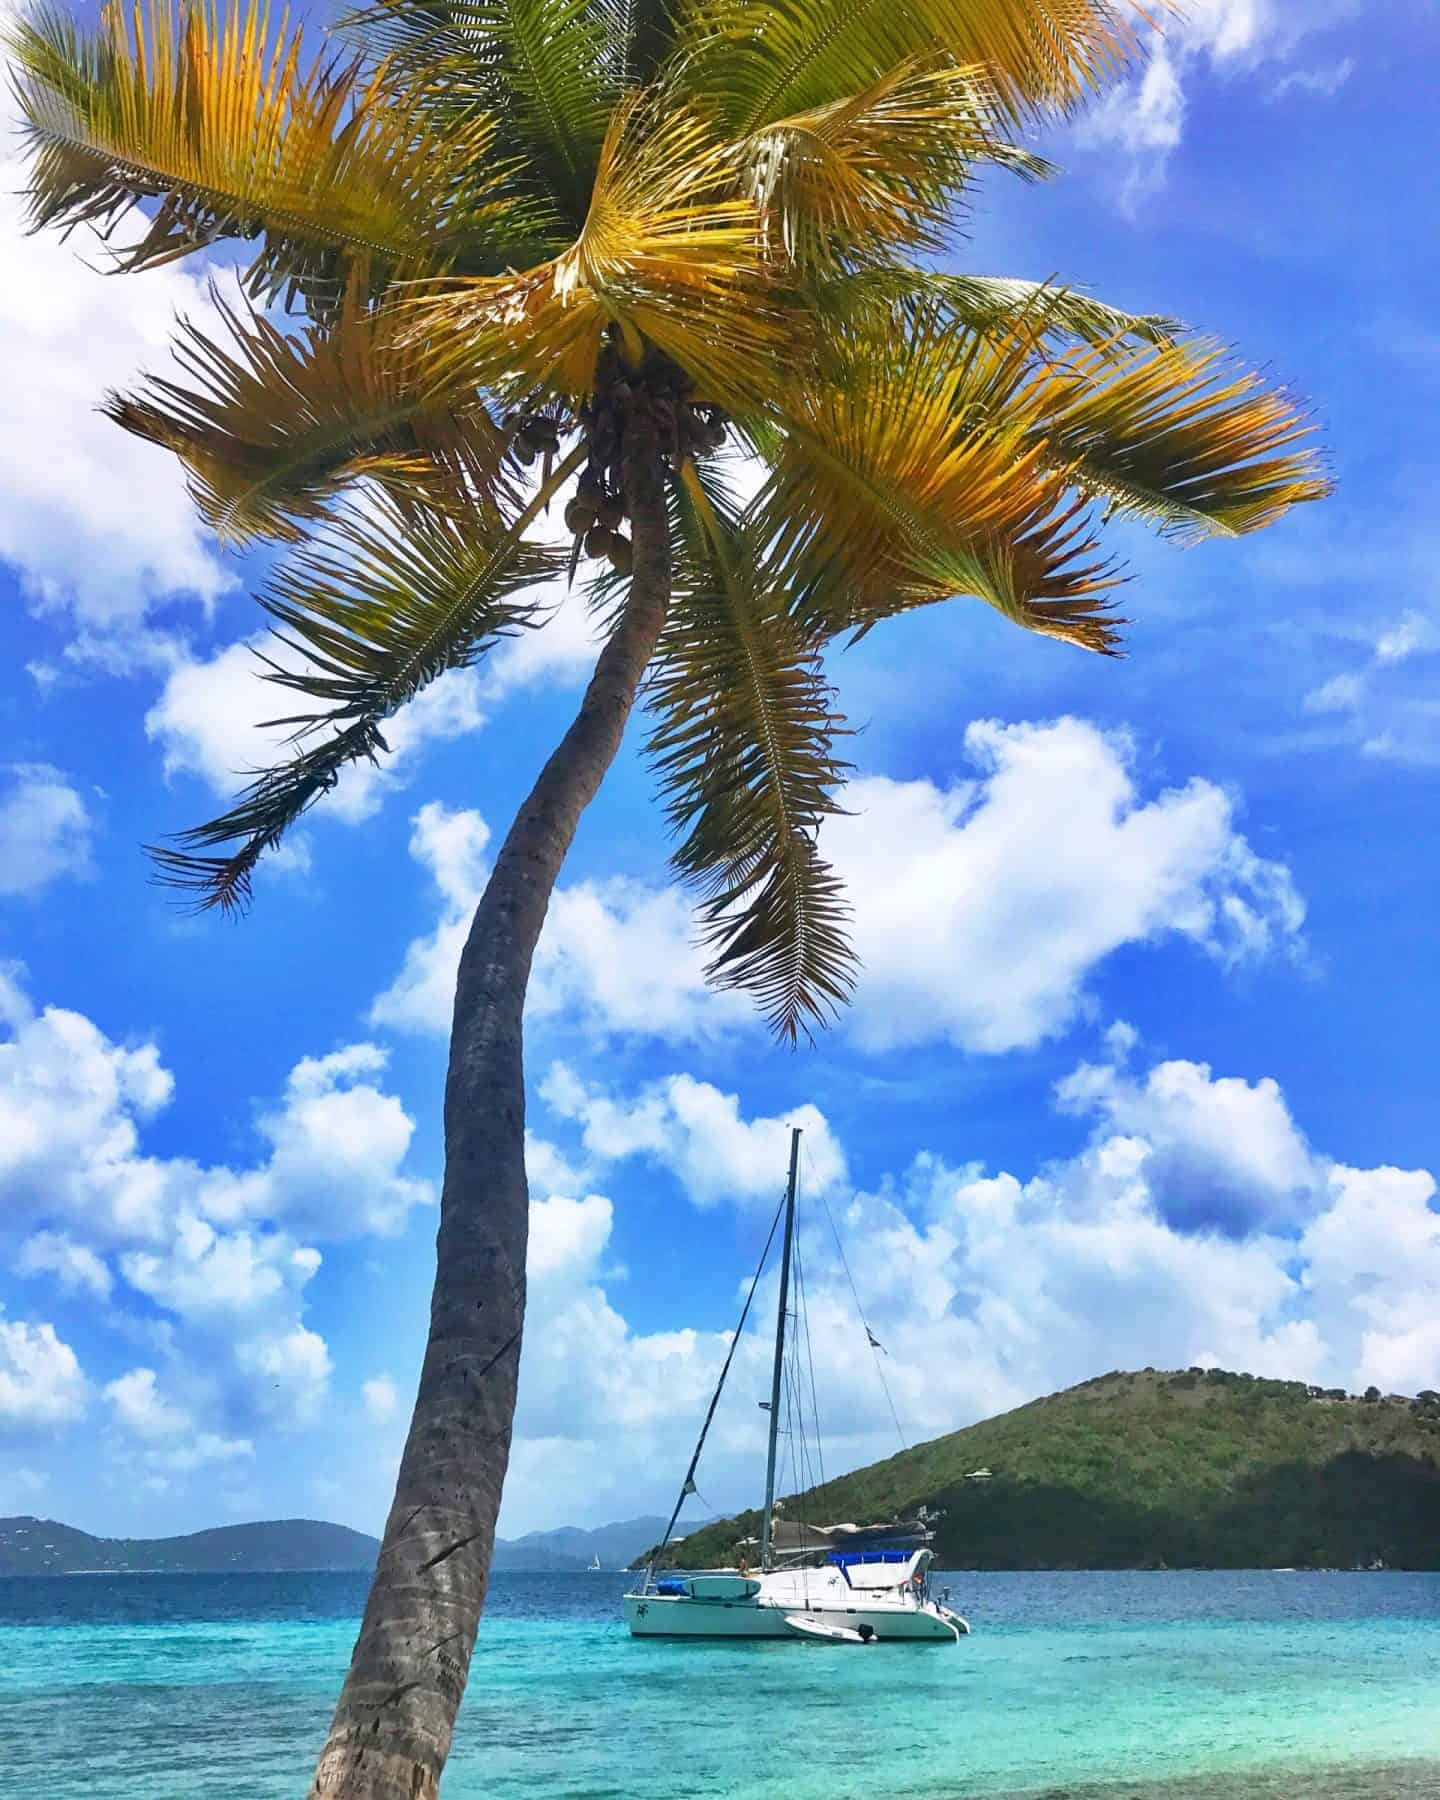 palm tree with a sailboat on crystal blue water in the backdrop